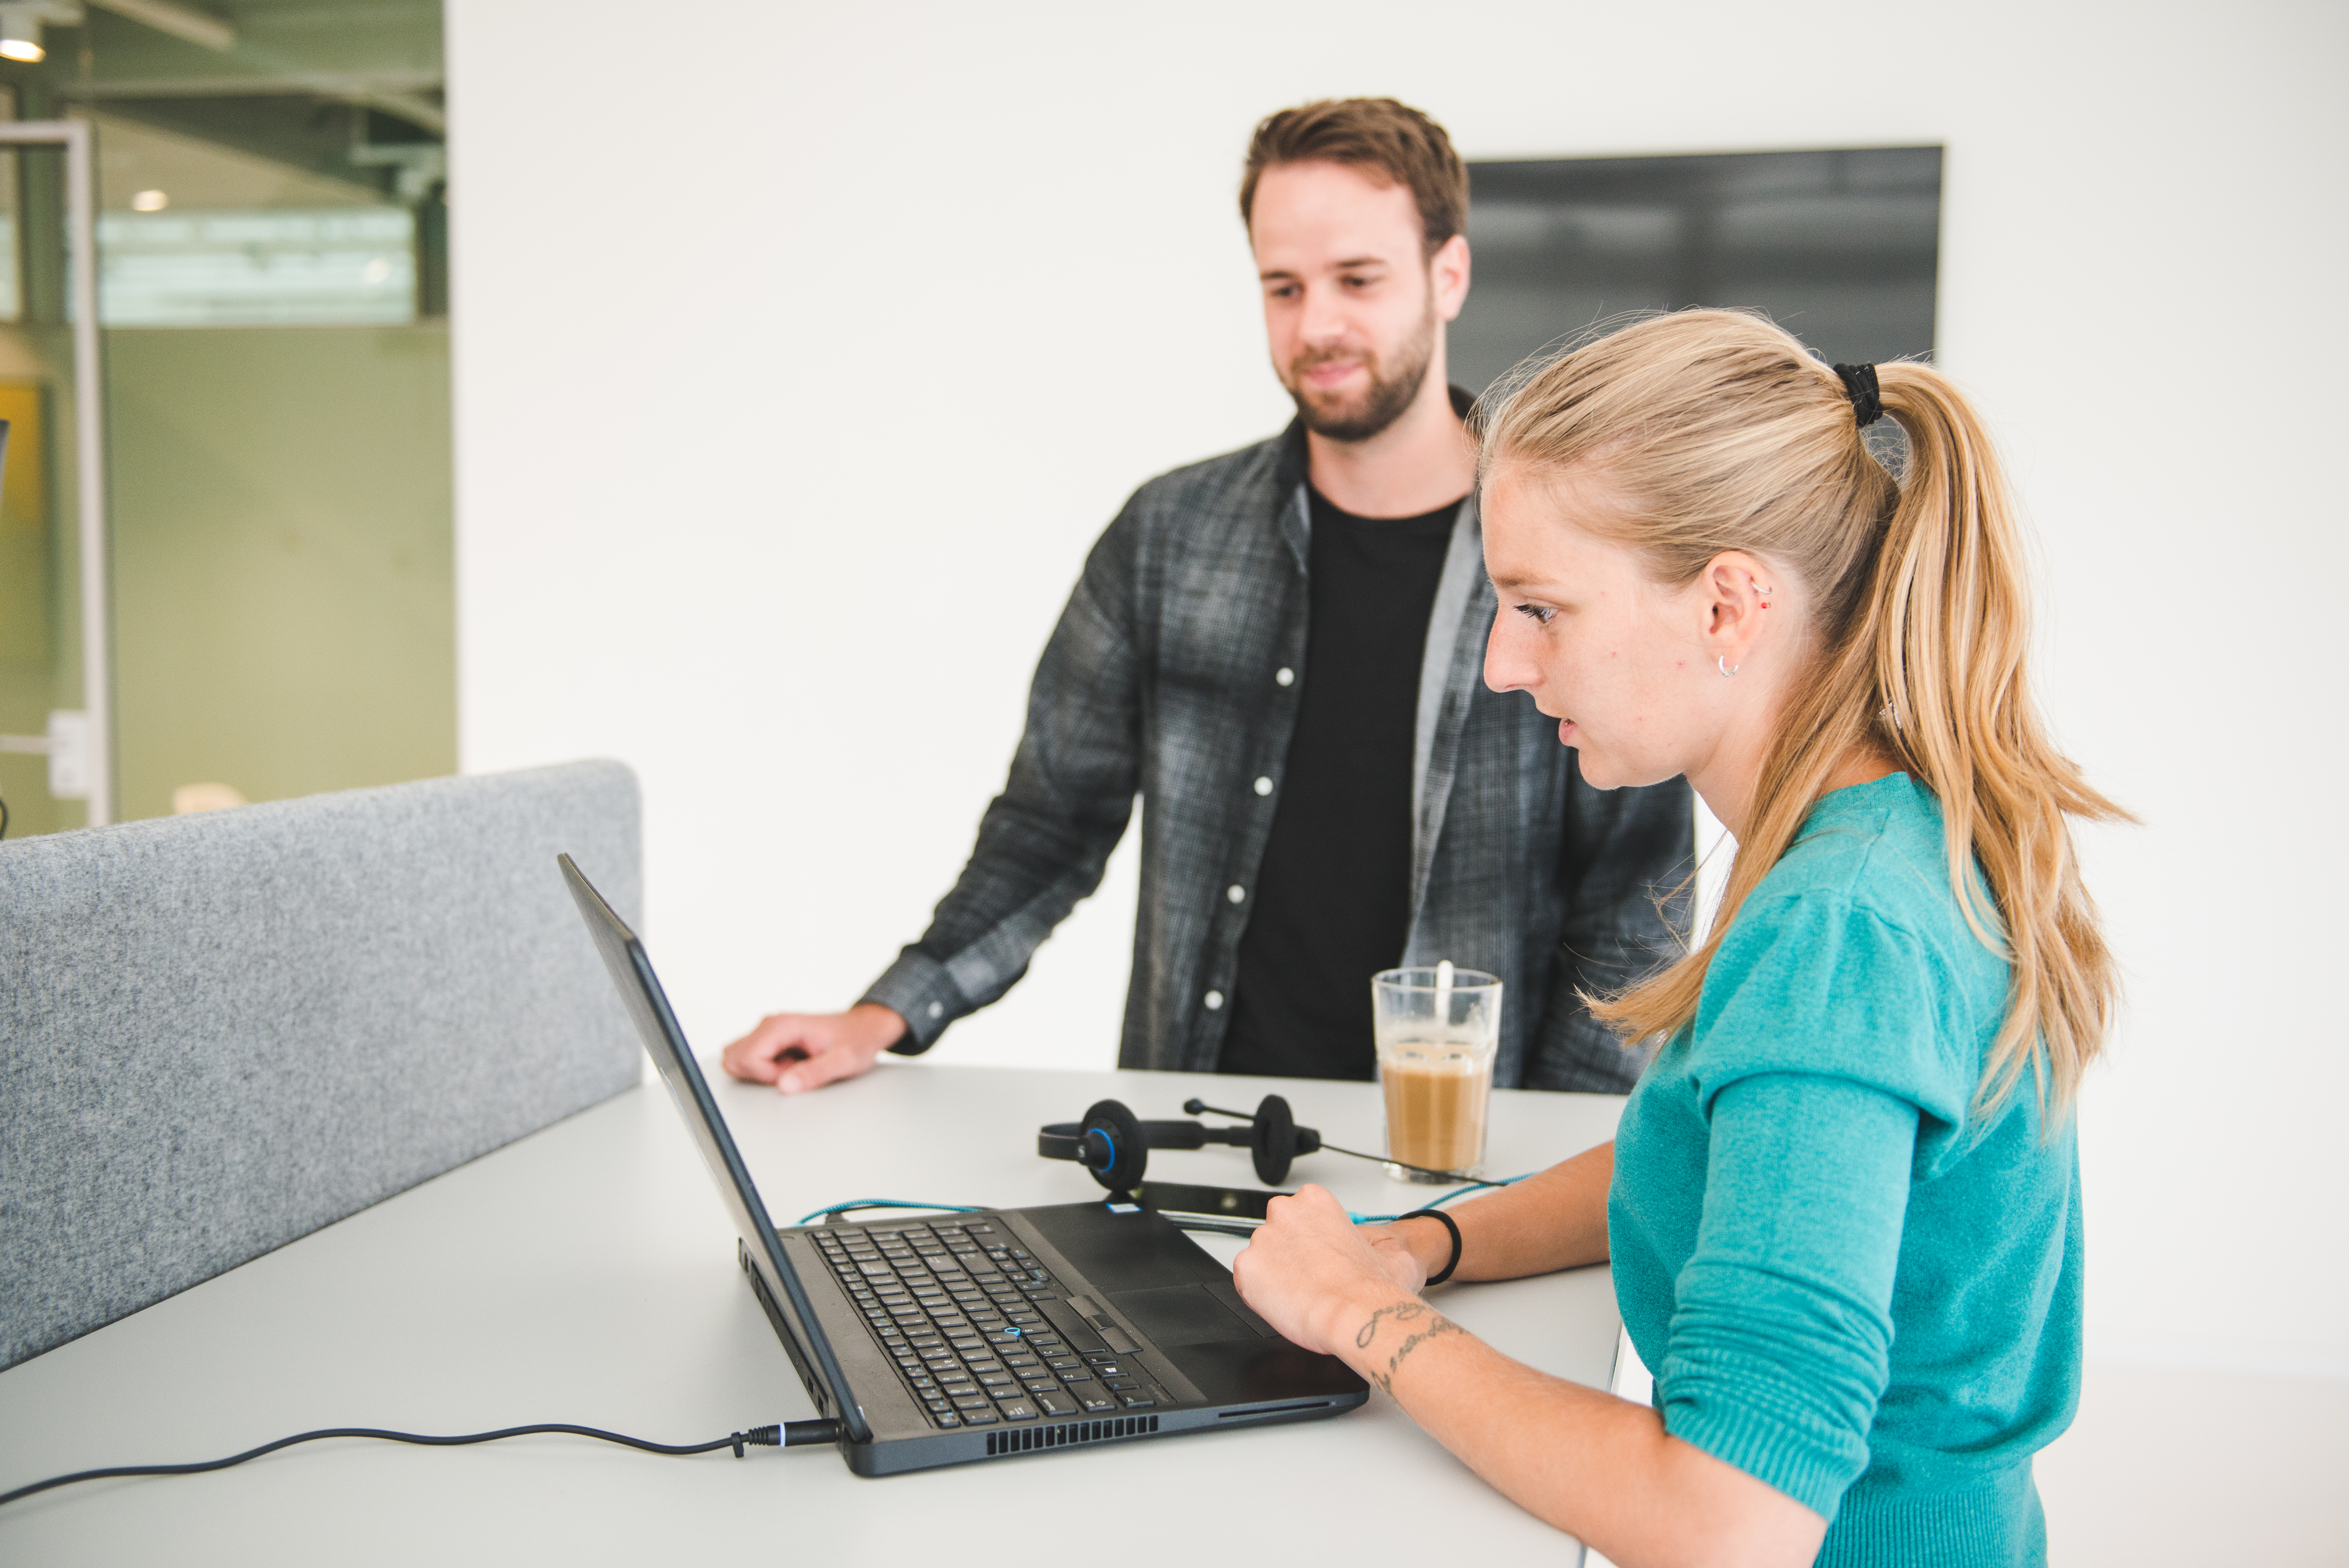 At Nmbrs, we work with multi-function teams. Our AI developer is showing something on the computer to our Content Marketeer.